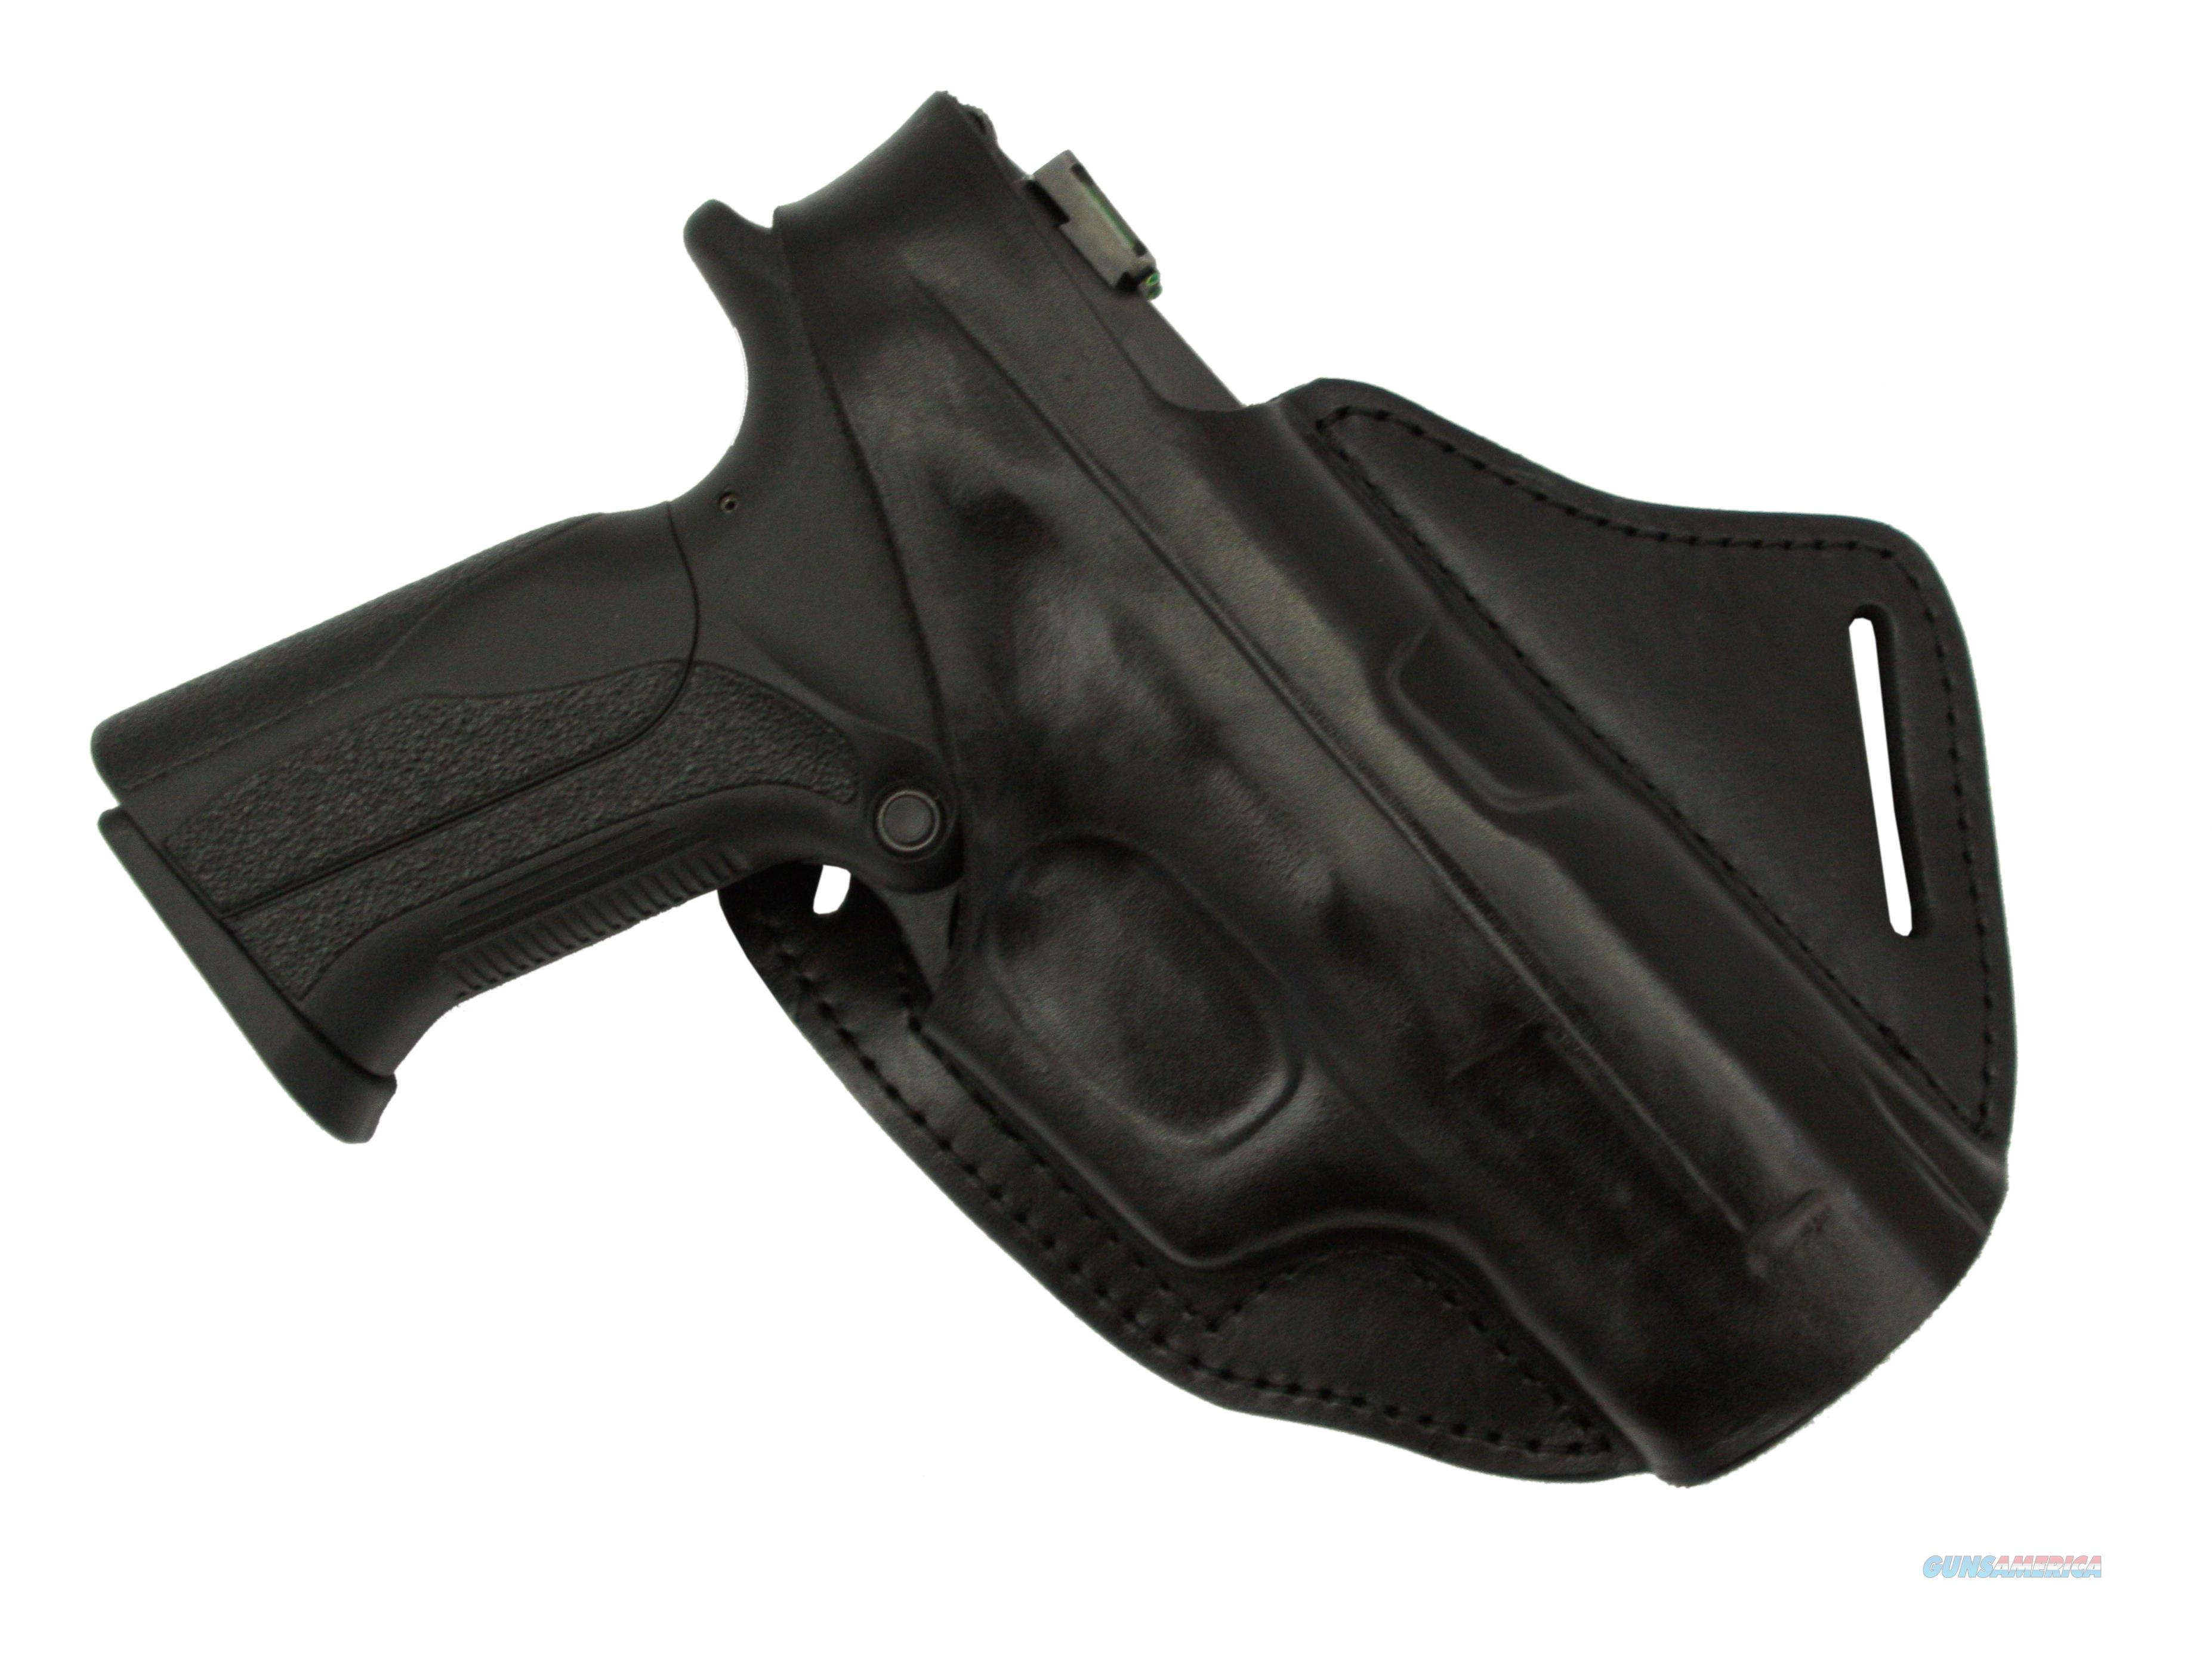 Cross Draw Leather Belt Holster  Sig Sauer P228/229  Non-Guns > Holsters and Gunleather > Concealed Carry